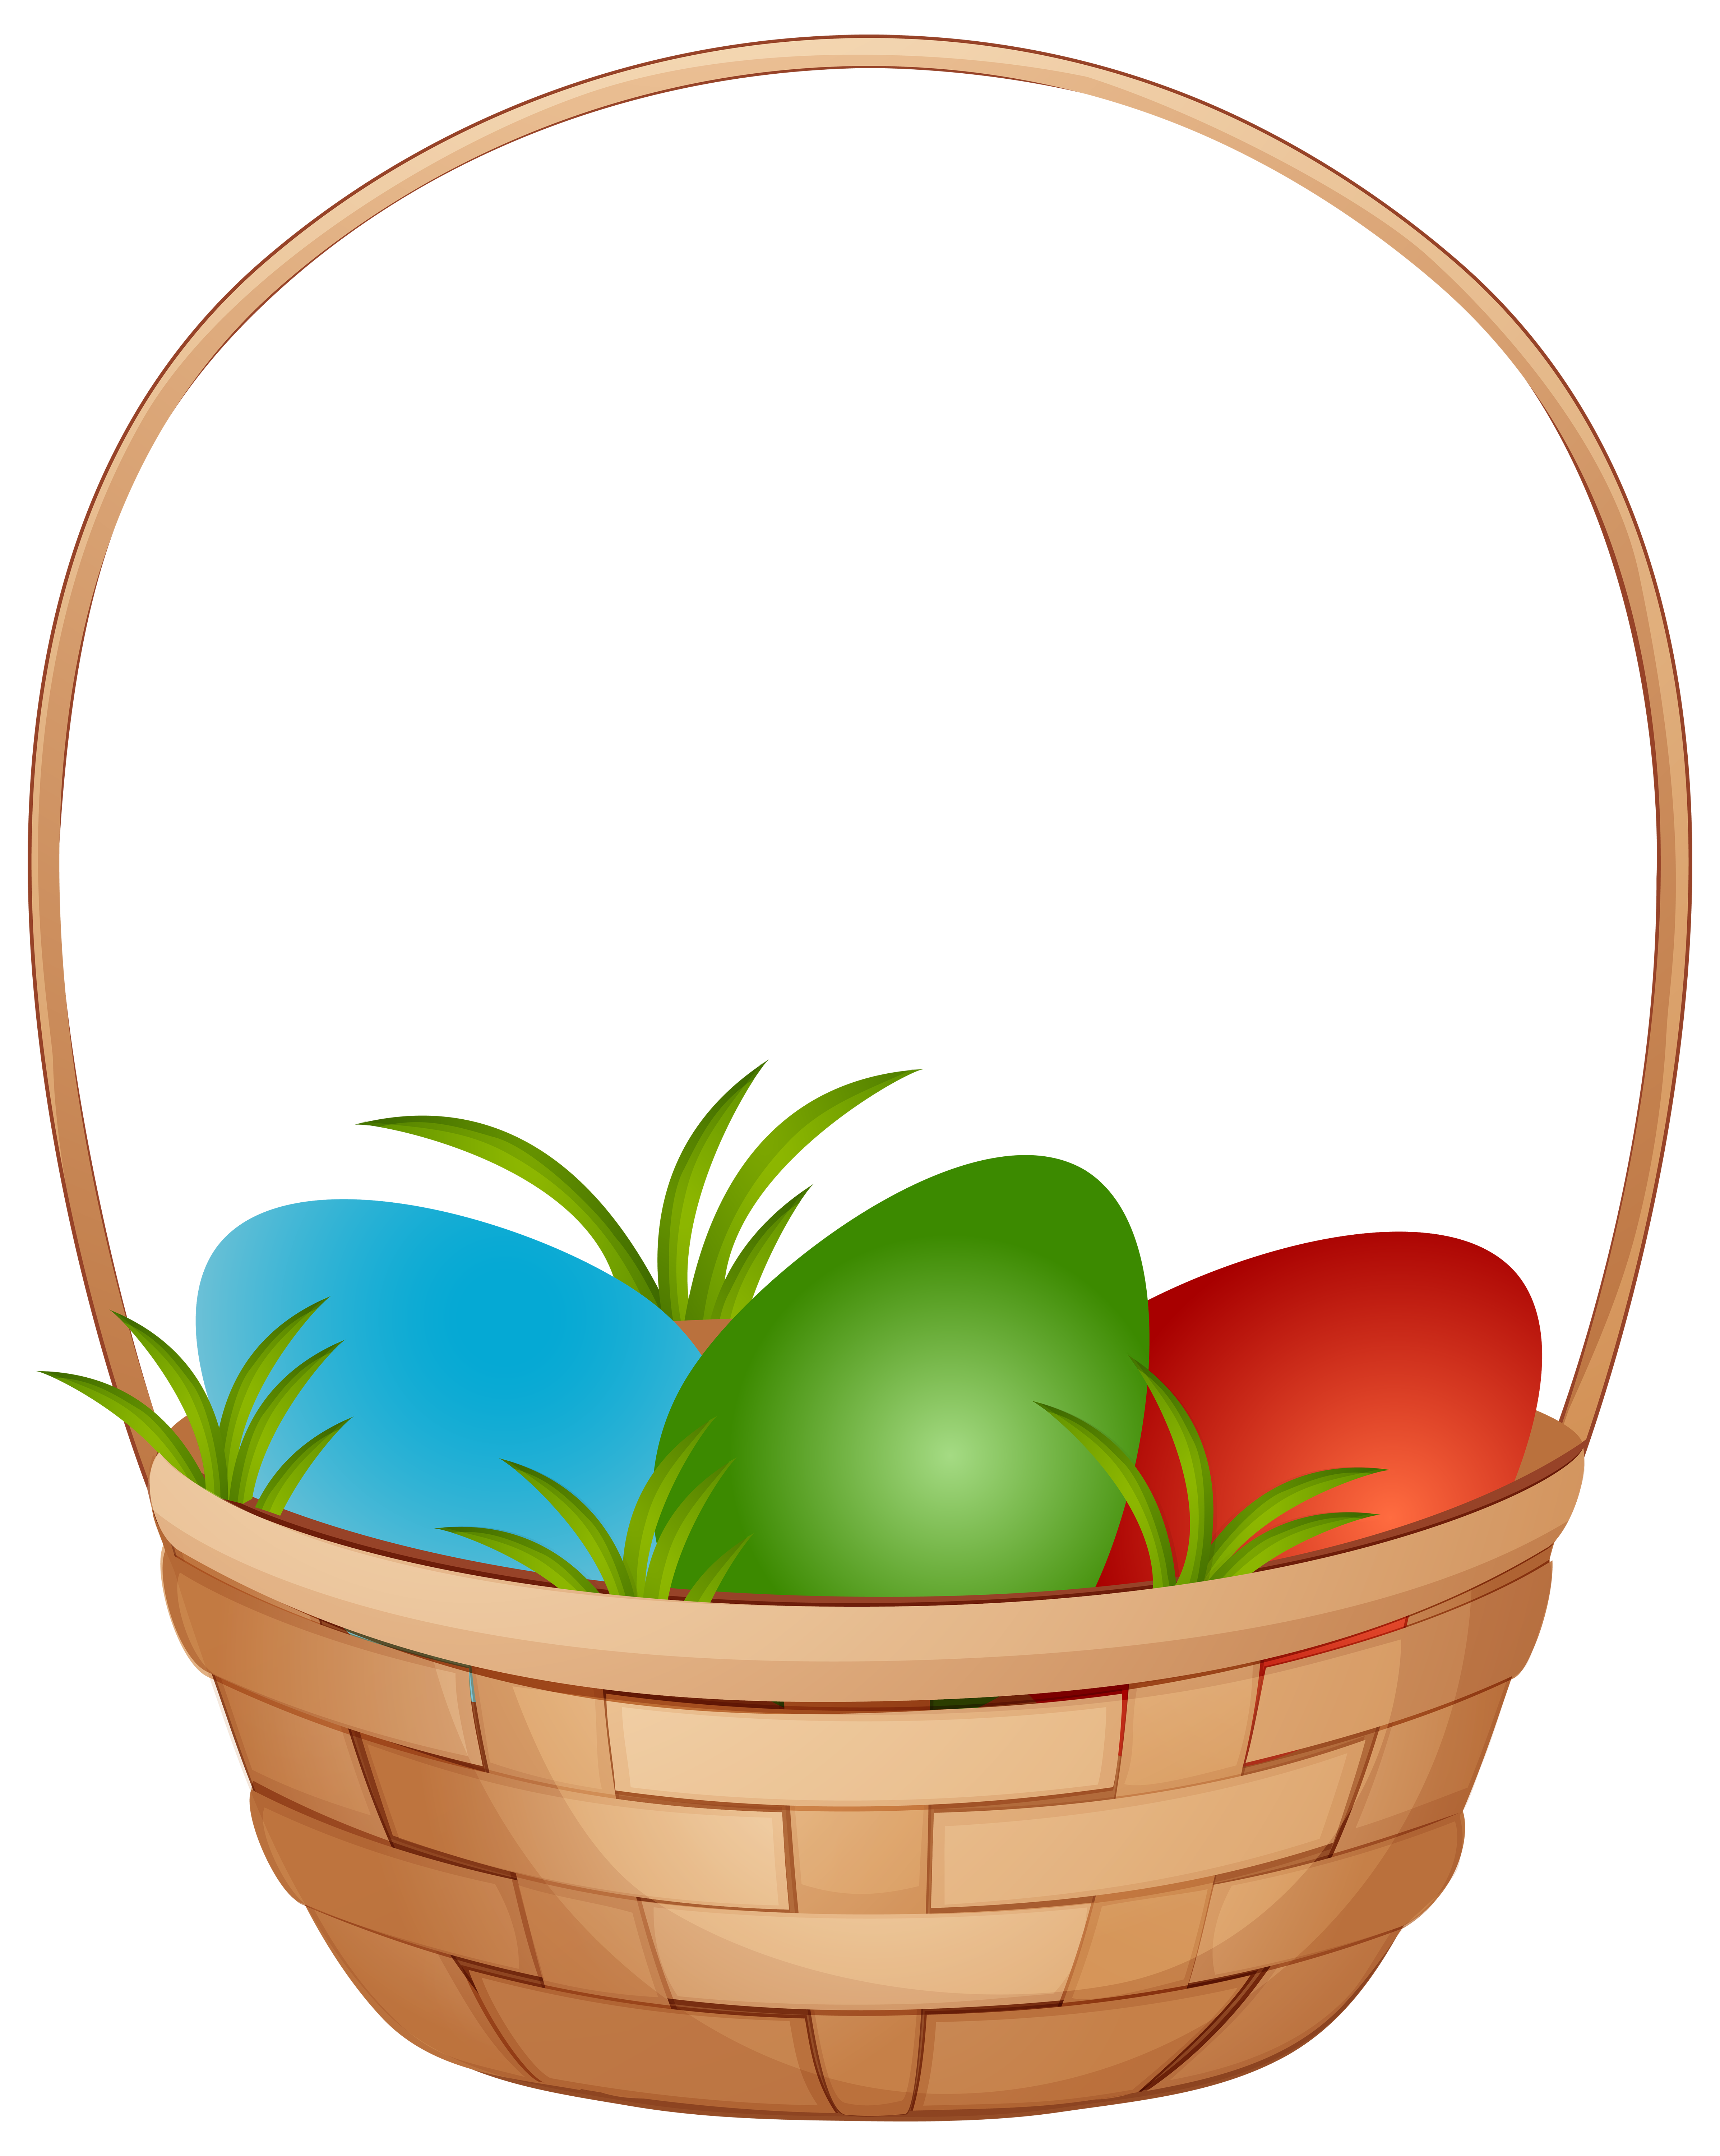 Water clipart basket. Easter with eggs png